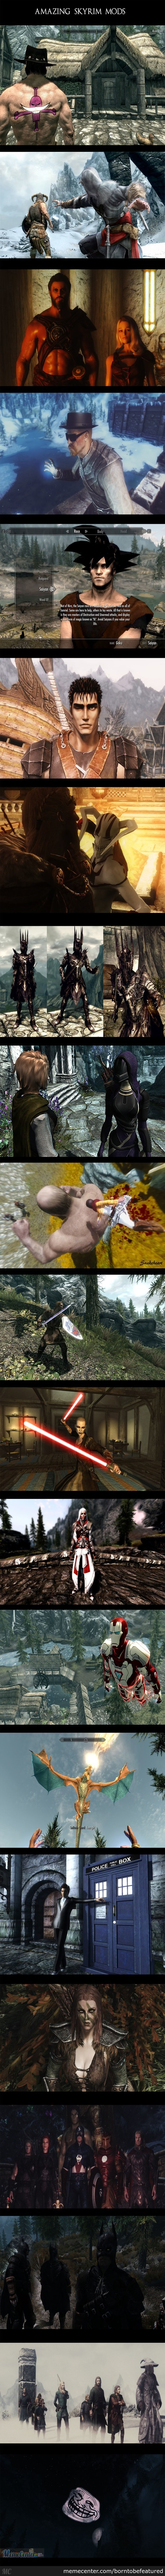 The Glory Of Skyrim Mods.